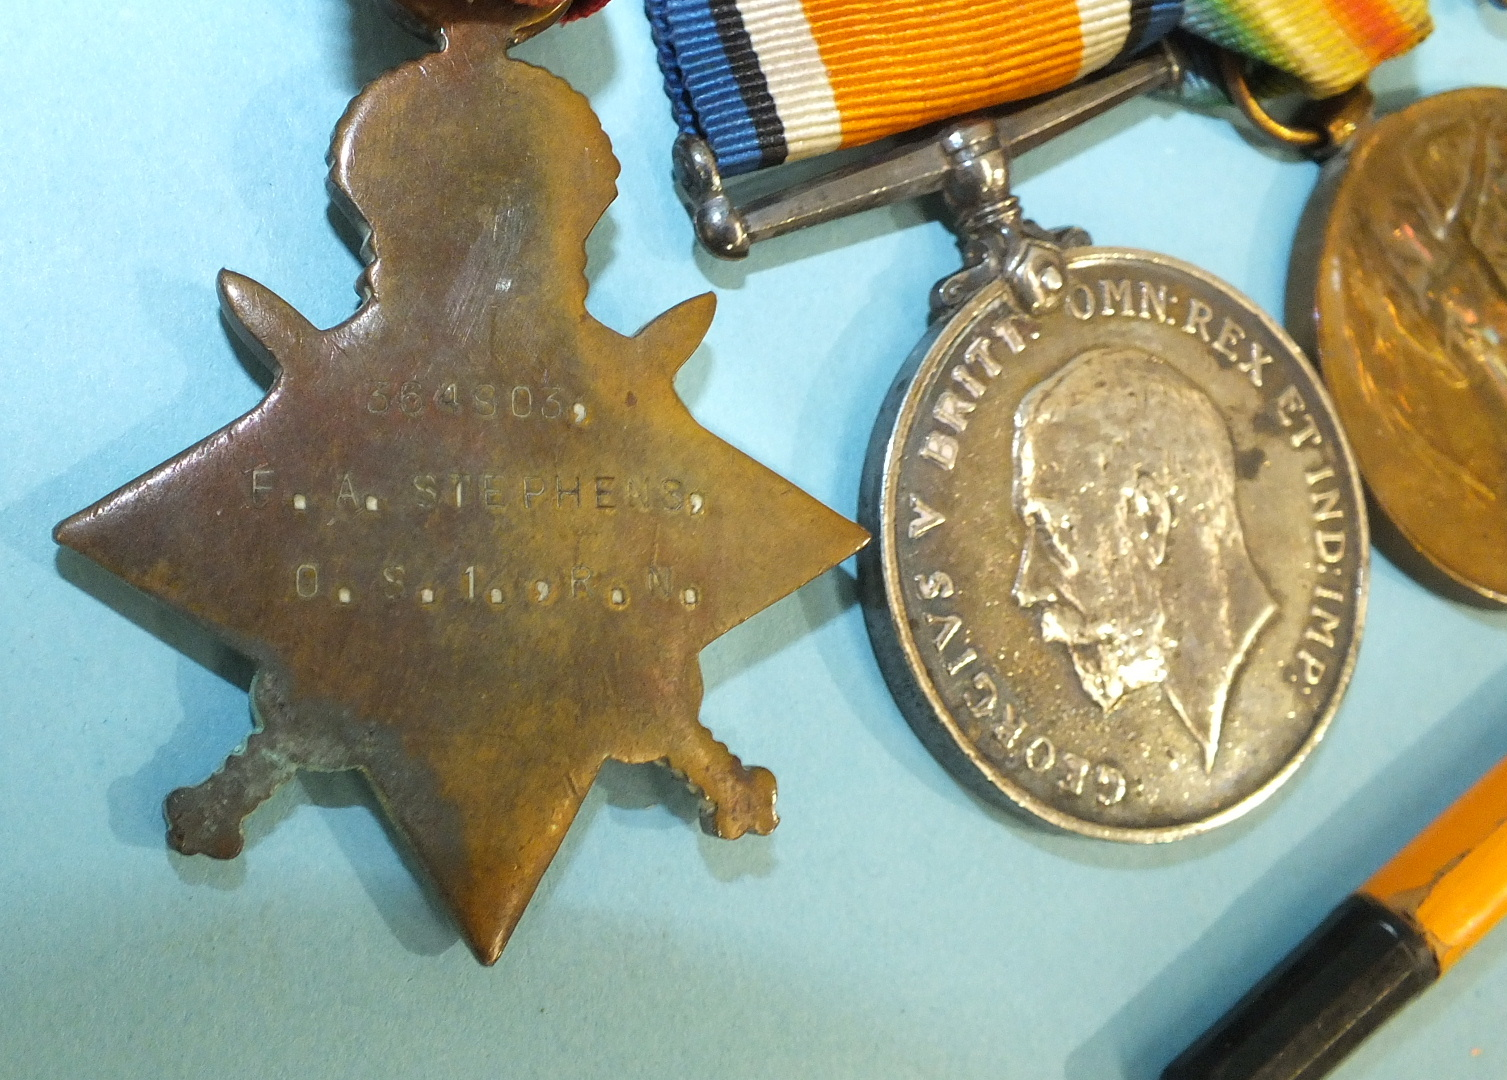 Lot 573 - A group of four WWI medals awarded to: 364903 F A Stephens O.C.I. RN, including 1914-15 Star, 1914-